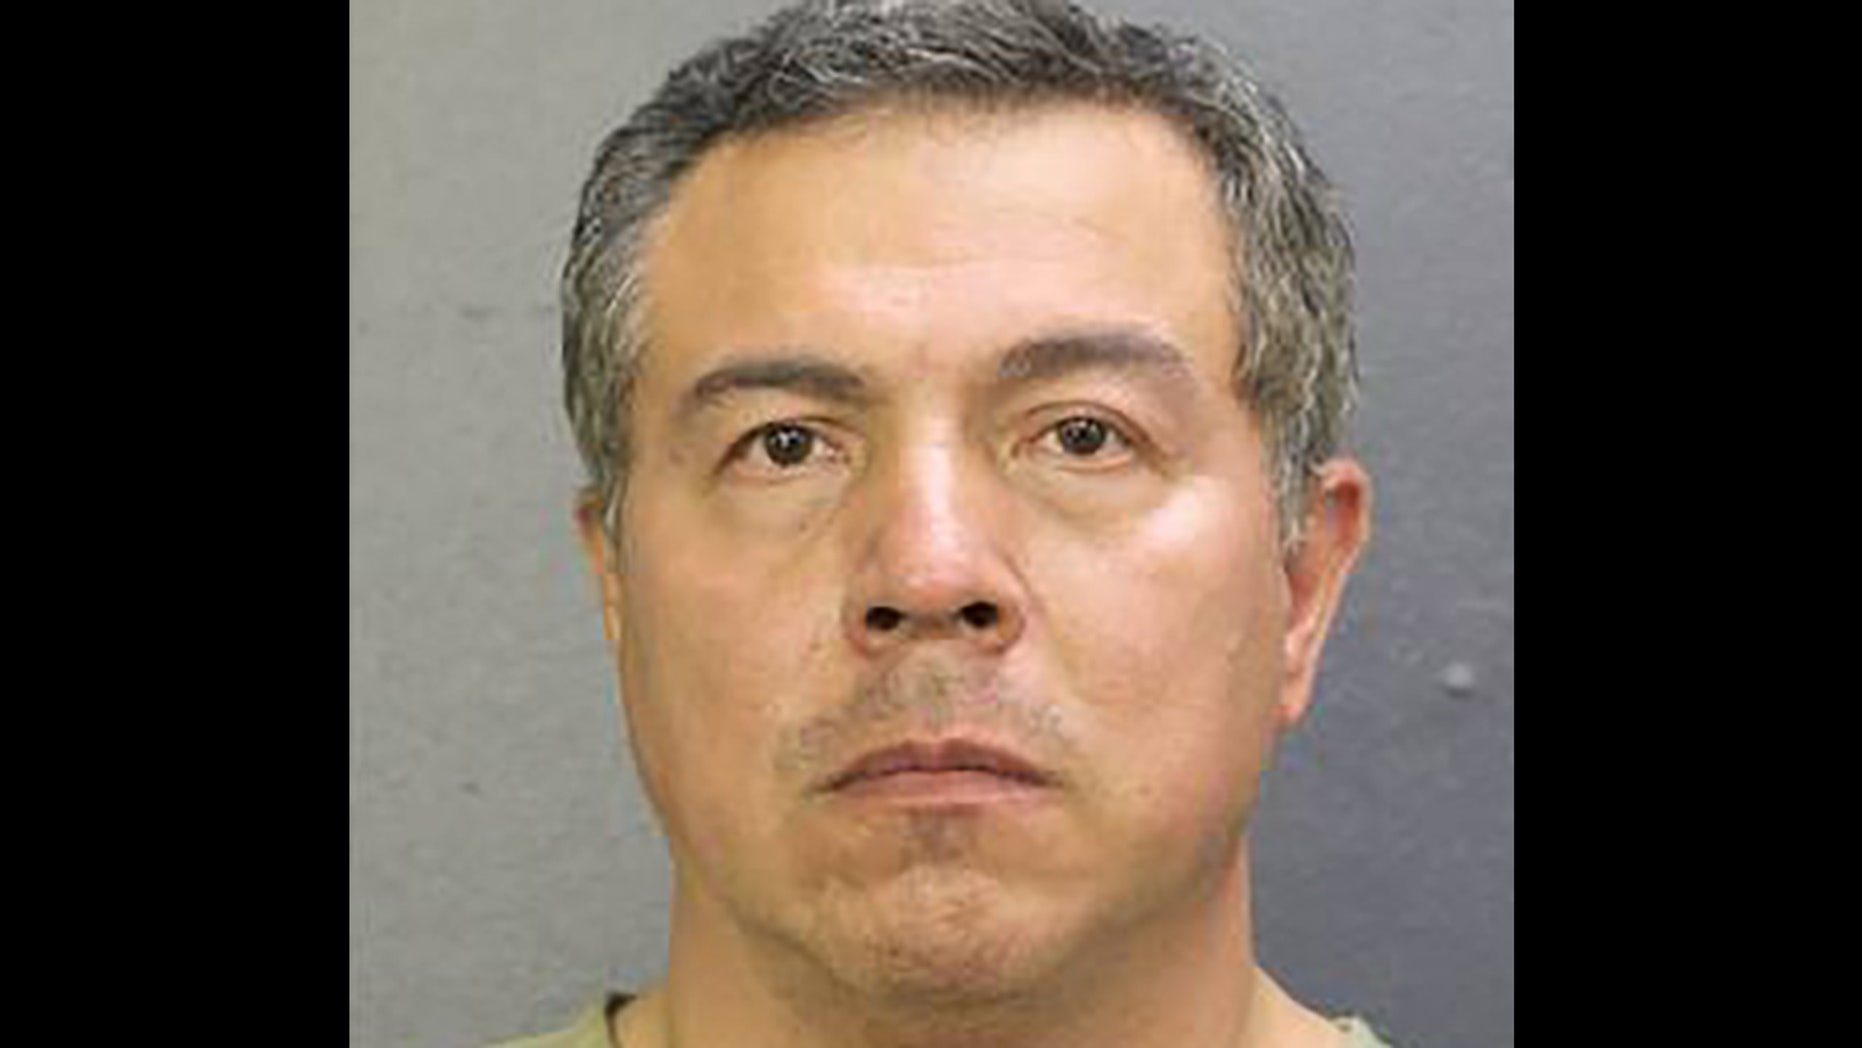 Florida husband stabbed wife with box cutter for putting 'voodoo